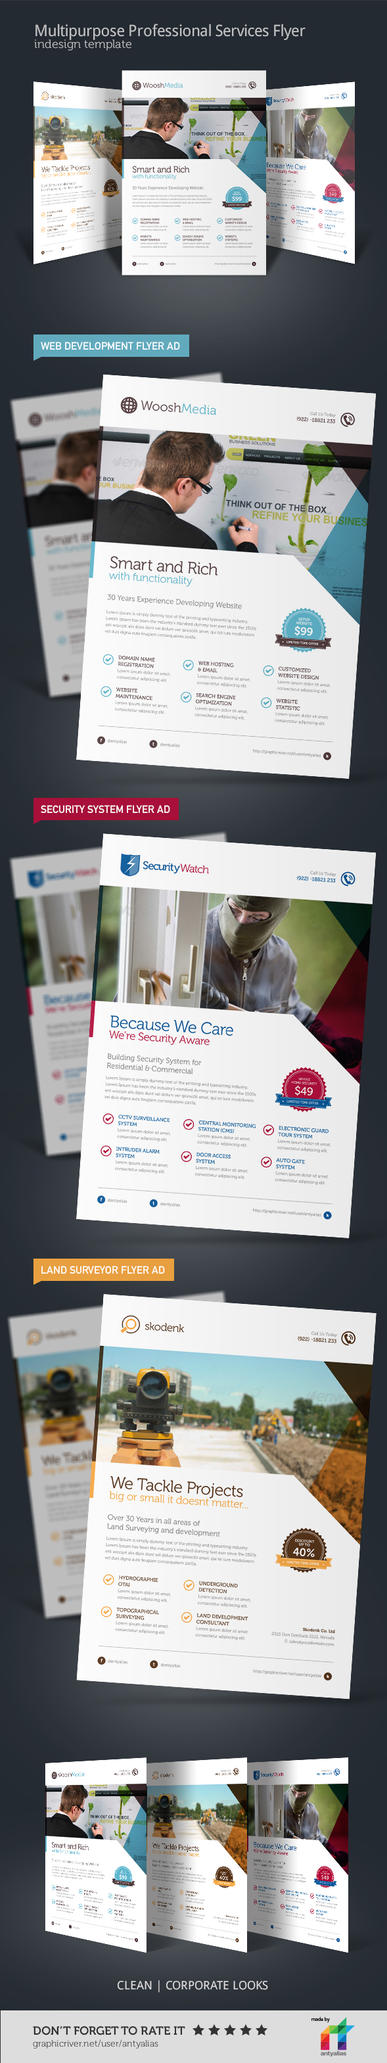 Multipurpose Professional Services Flyer by antyalias